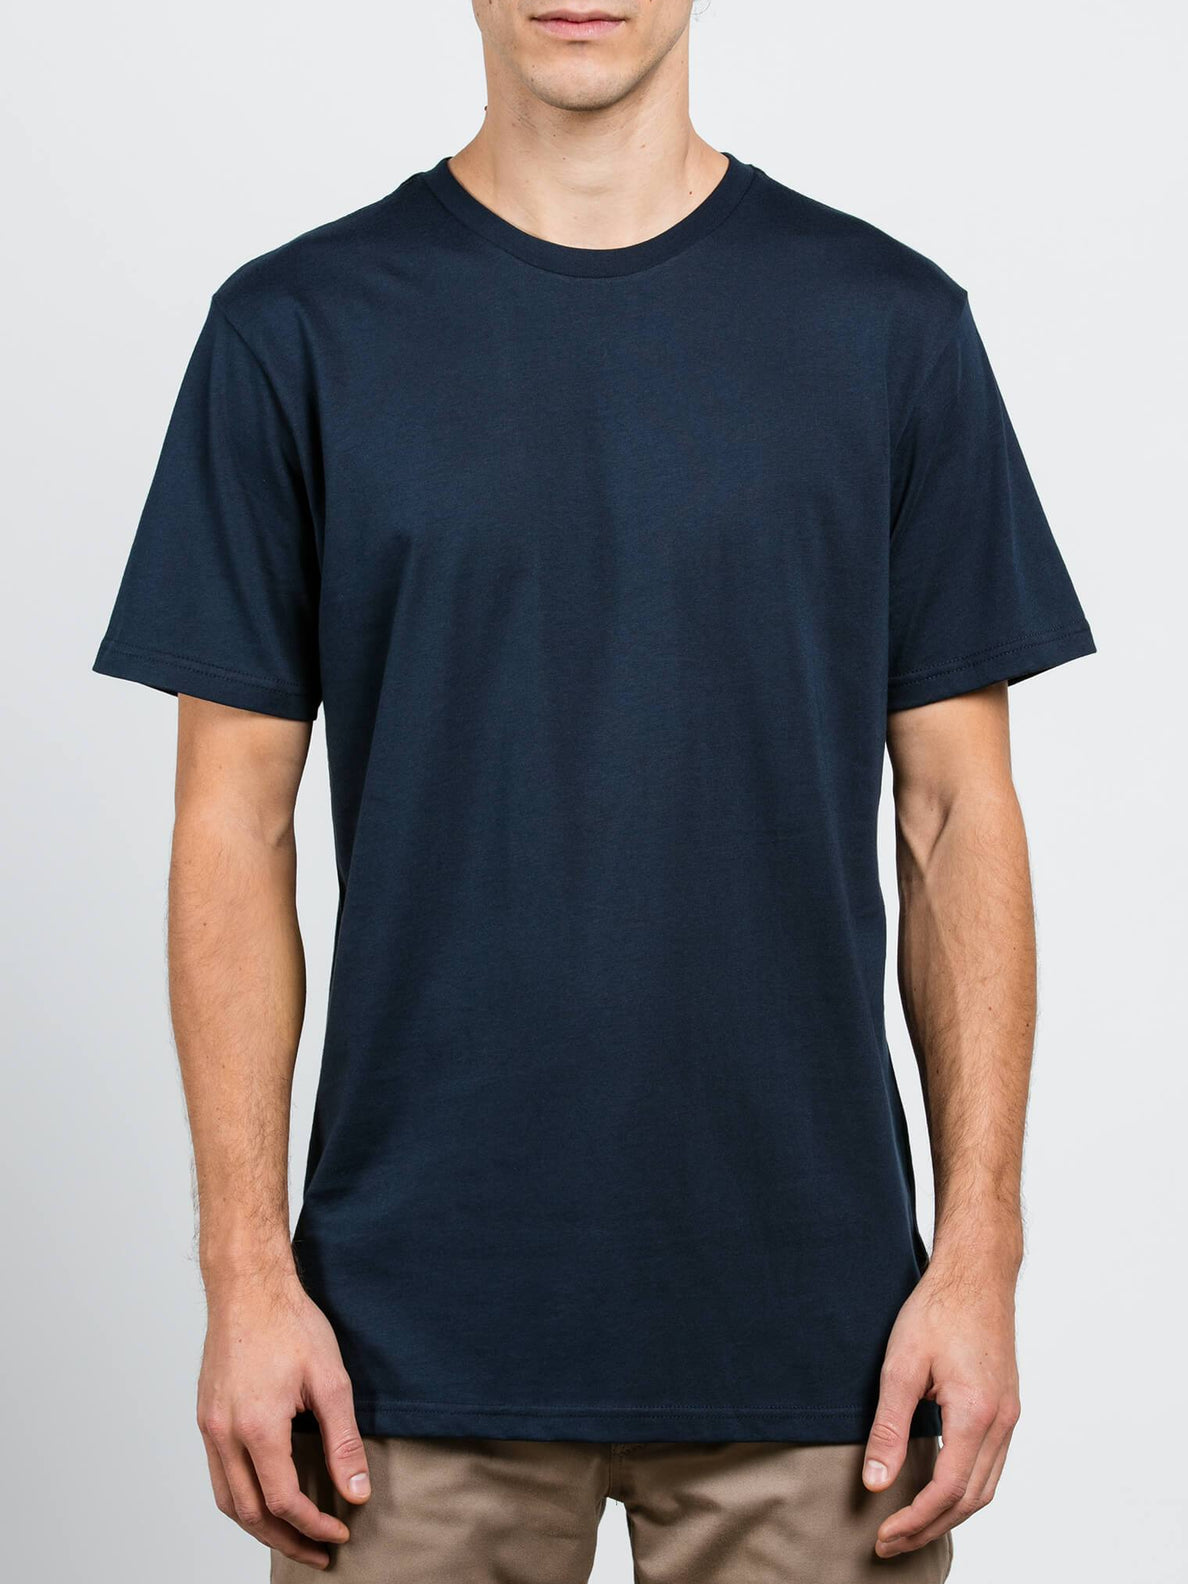 Solid Ss Tee In Navy, Front View